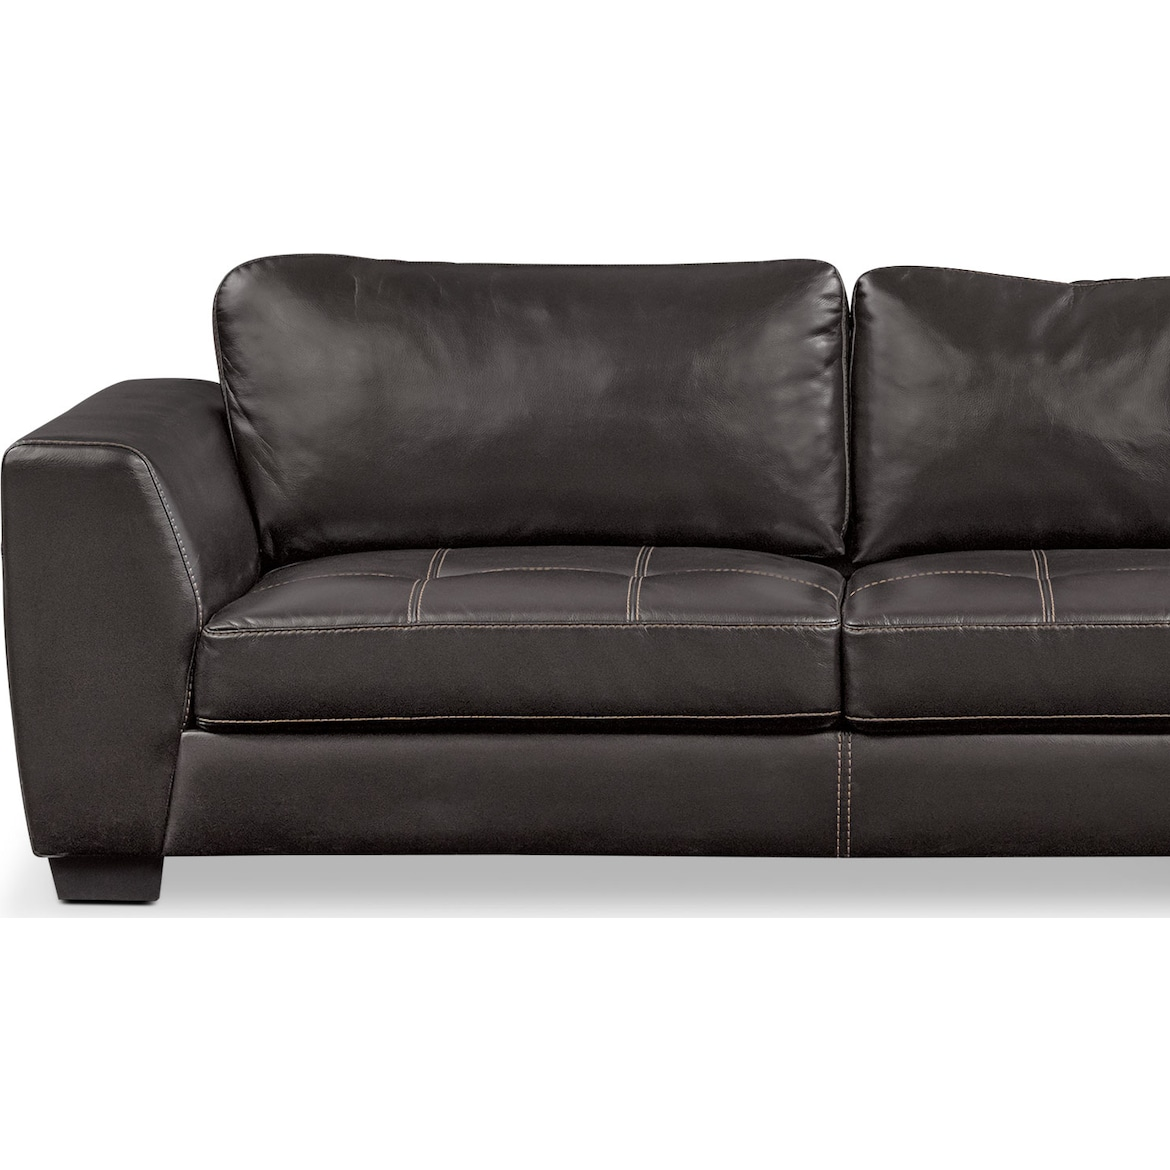 Santana 2-Piece Sectional with Chaise